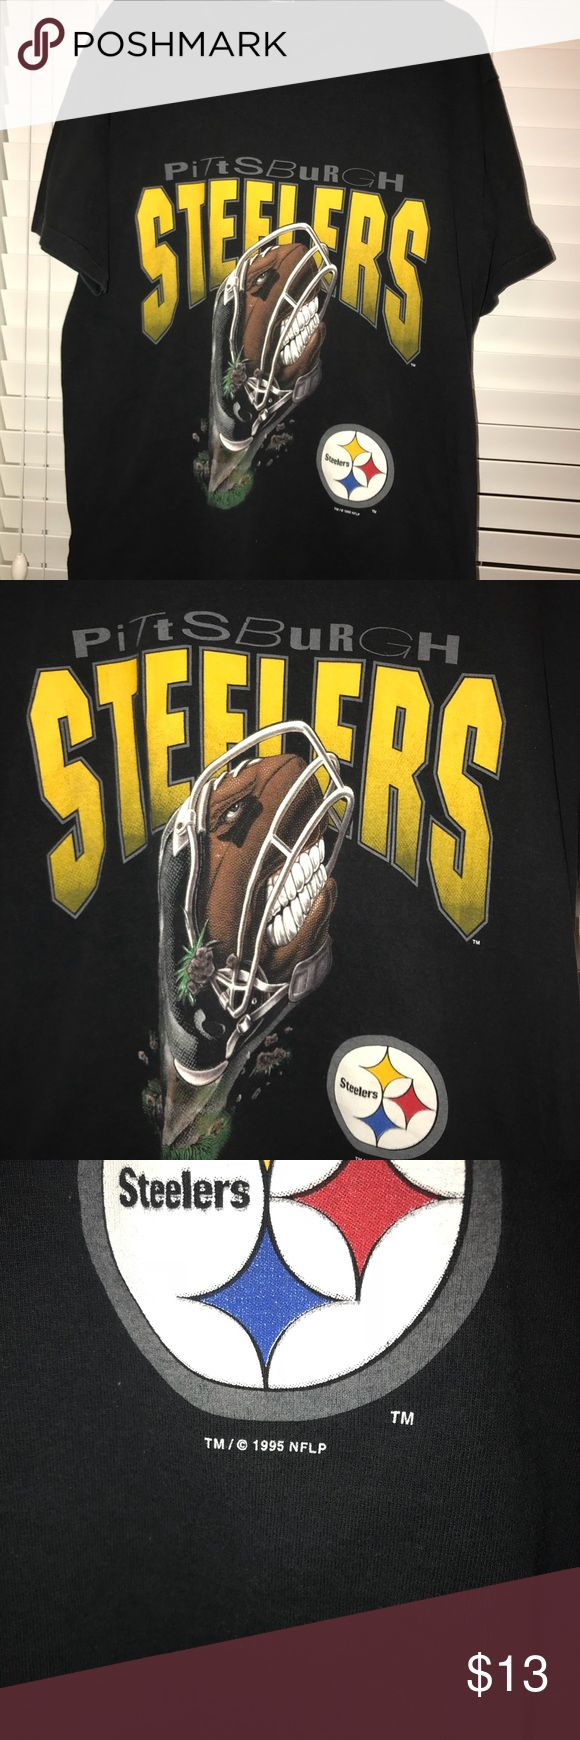 Vintage 1995 Pittsburgh Steelers T-shirt Great Condition Fits Adult XL 1995 Shirts Tees - Short Sleeve